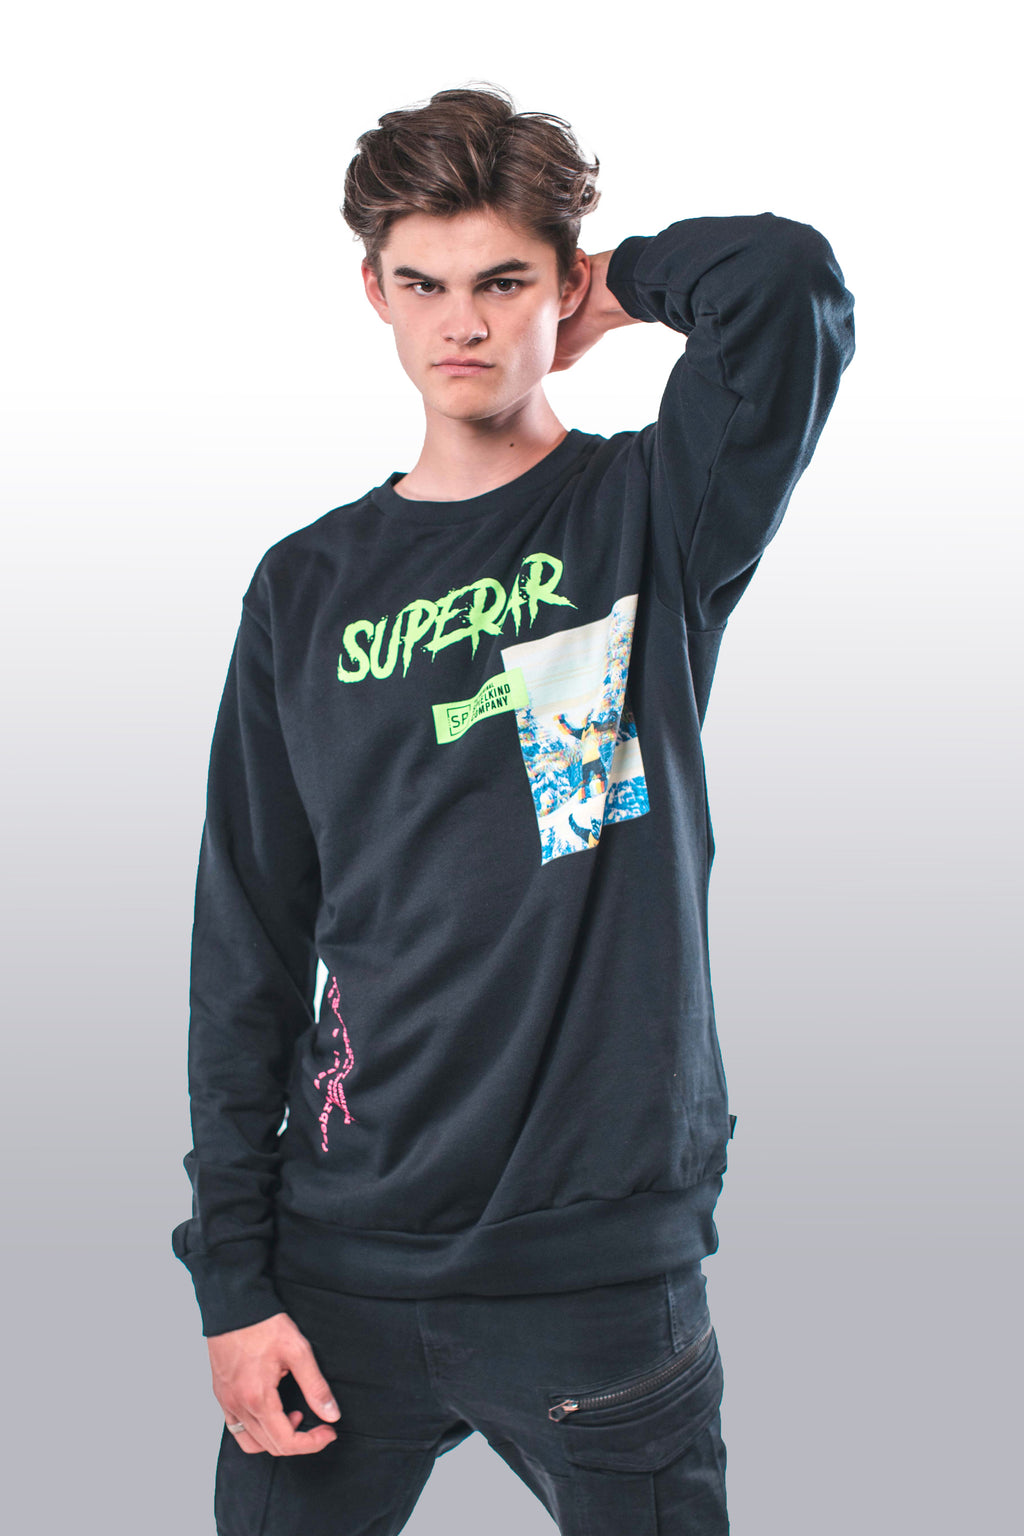 GLITCH SWEATER by SPIELKIND SUPERAR (6068981661845)